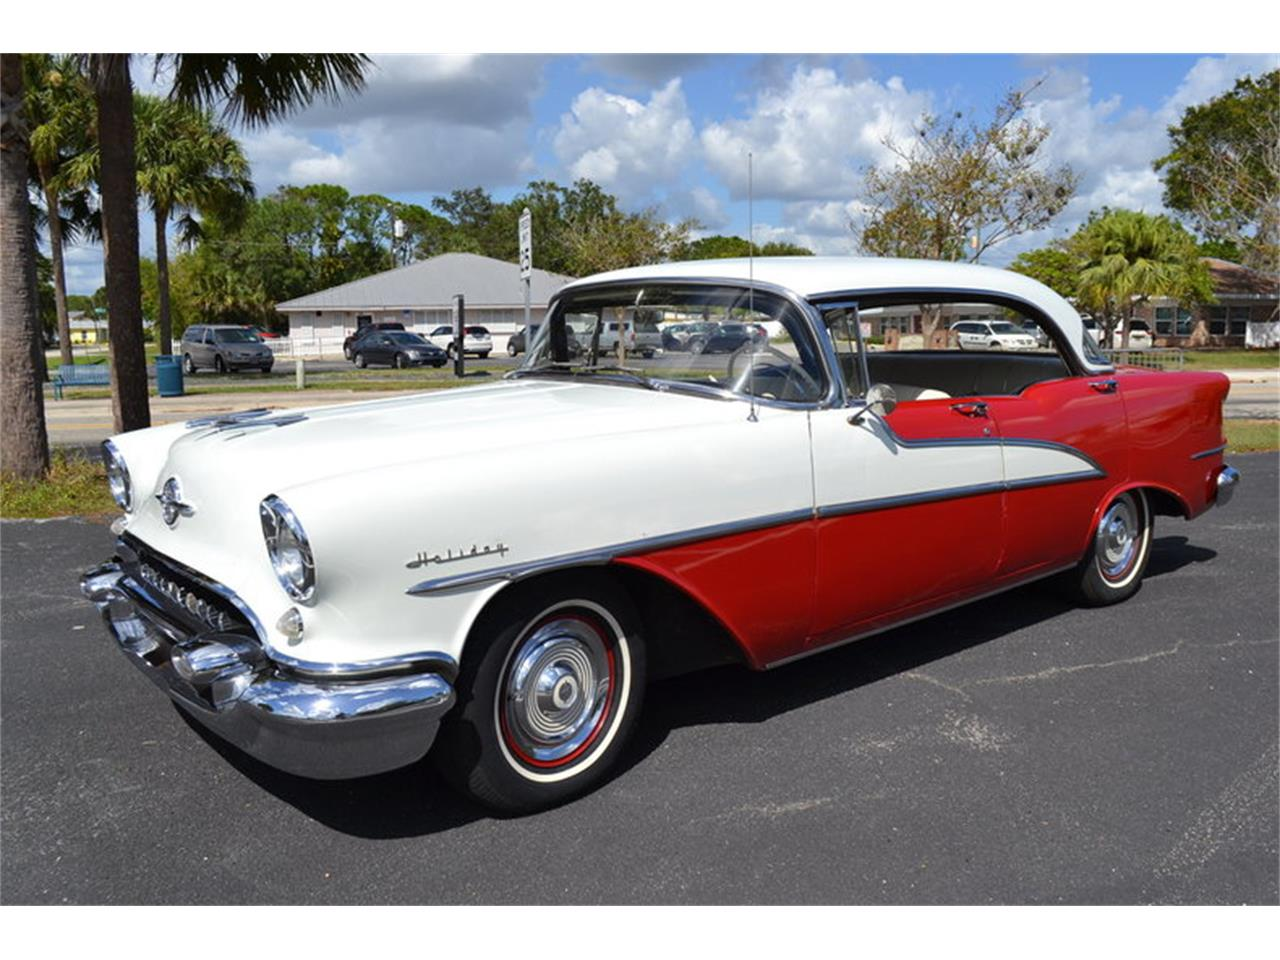 For Sale: 1955 Oldsmobile Super 88 in Englewood, Florida